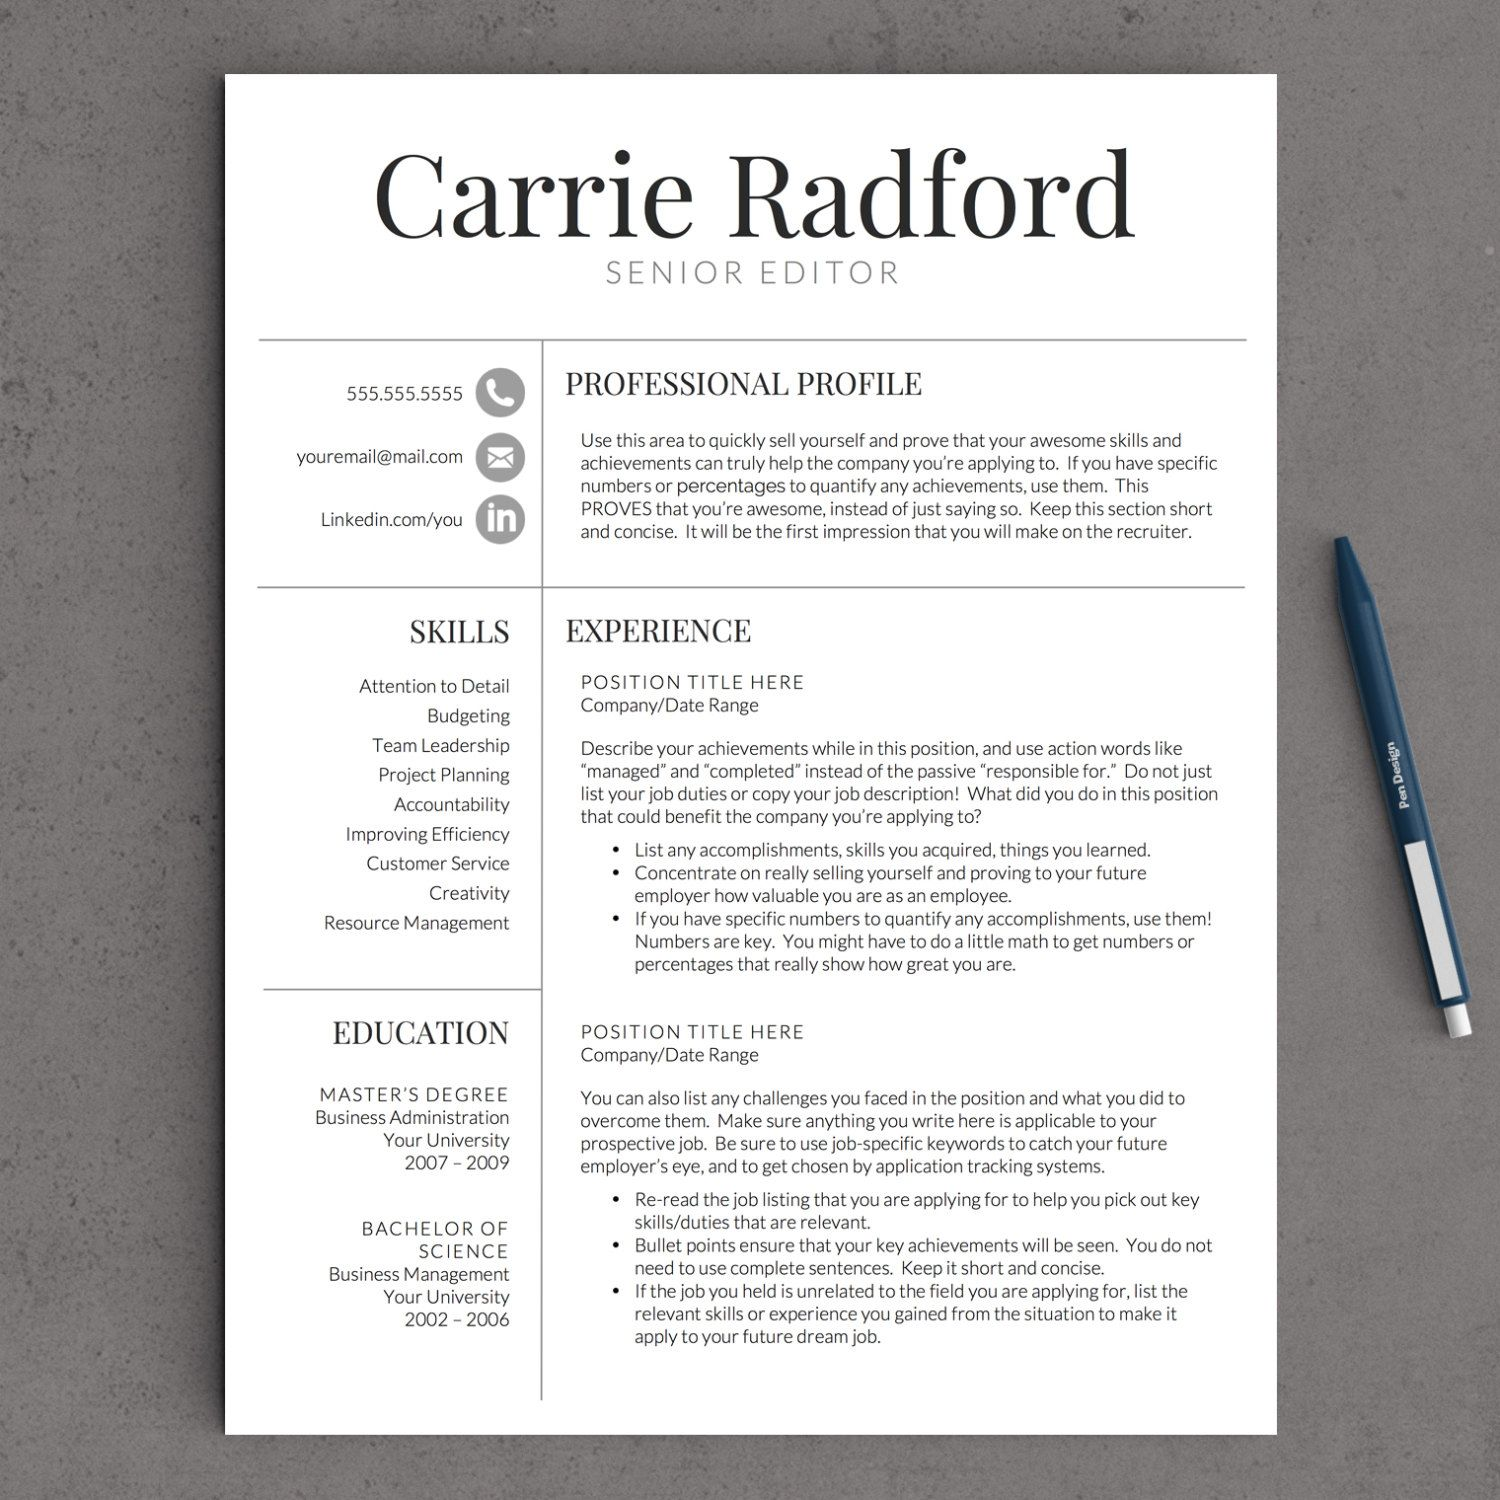 classic professional resume template for word us letter 2 or 3 page resume template icons cover letter tips - Classic Resume Template Word